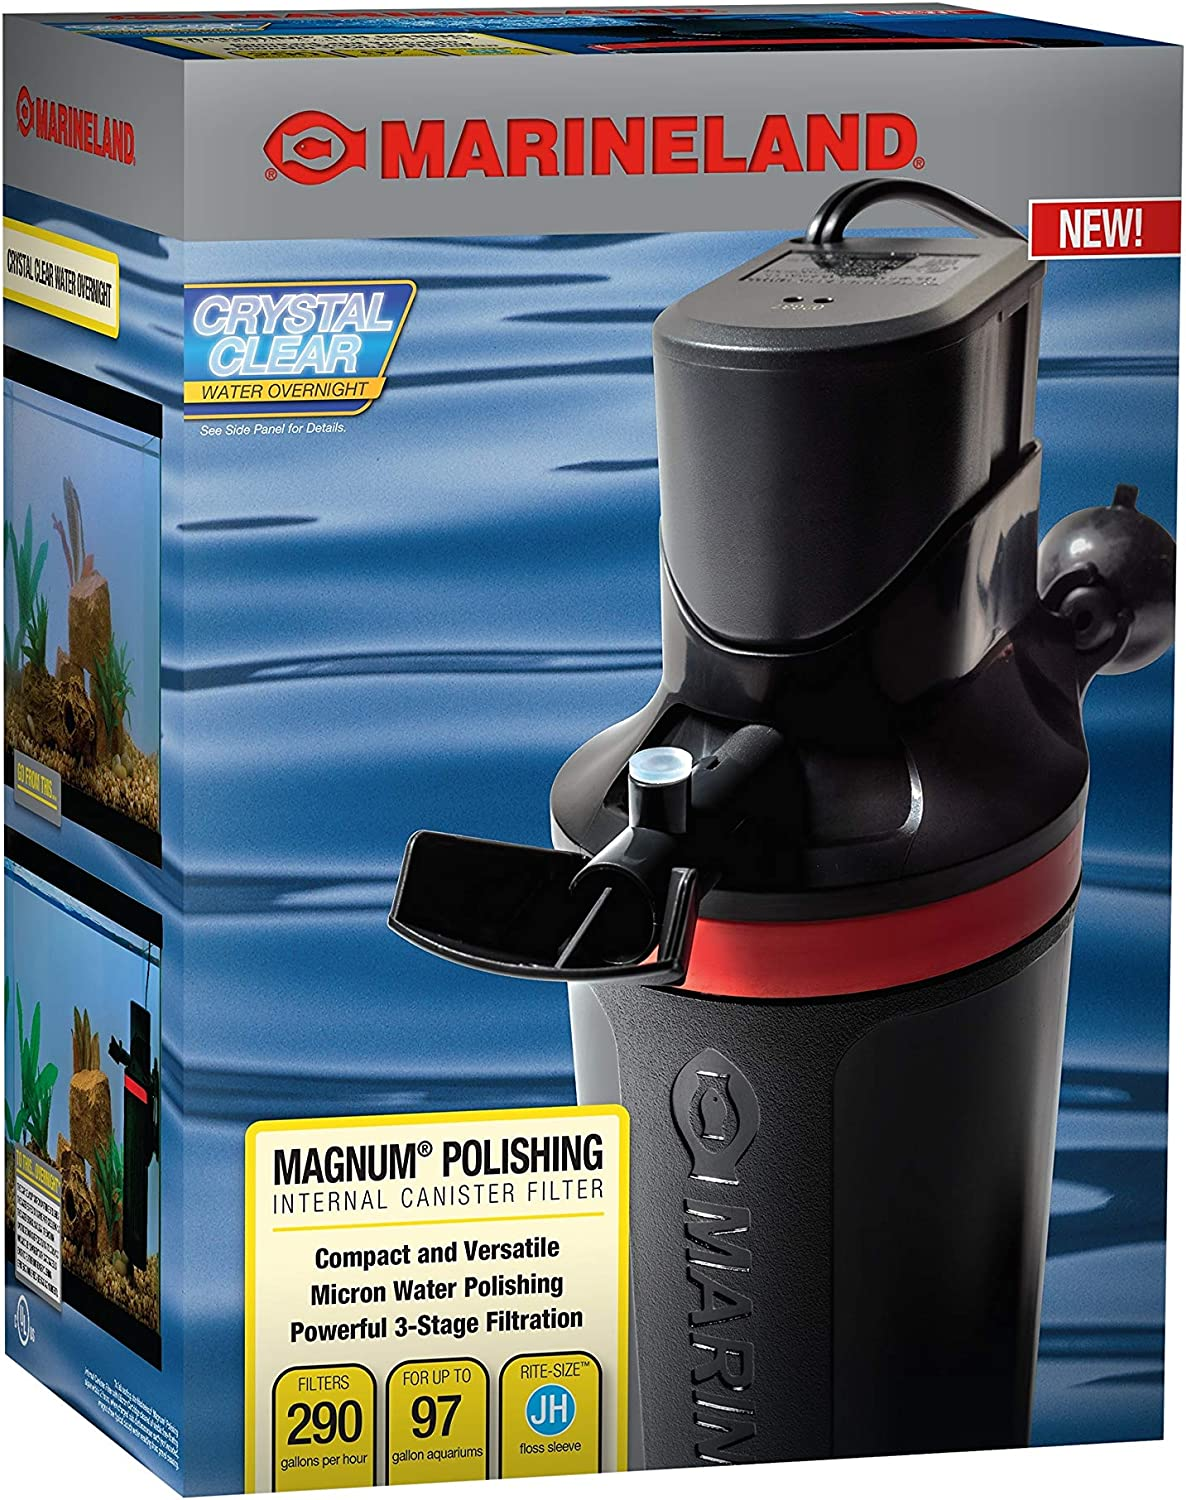 Marineland Magnum Polishing Internal Filter for 55 gallon fish tank